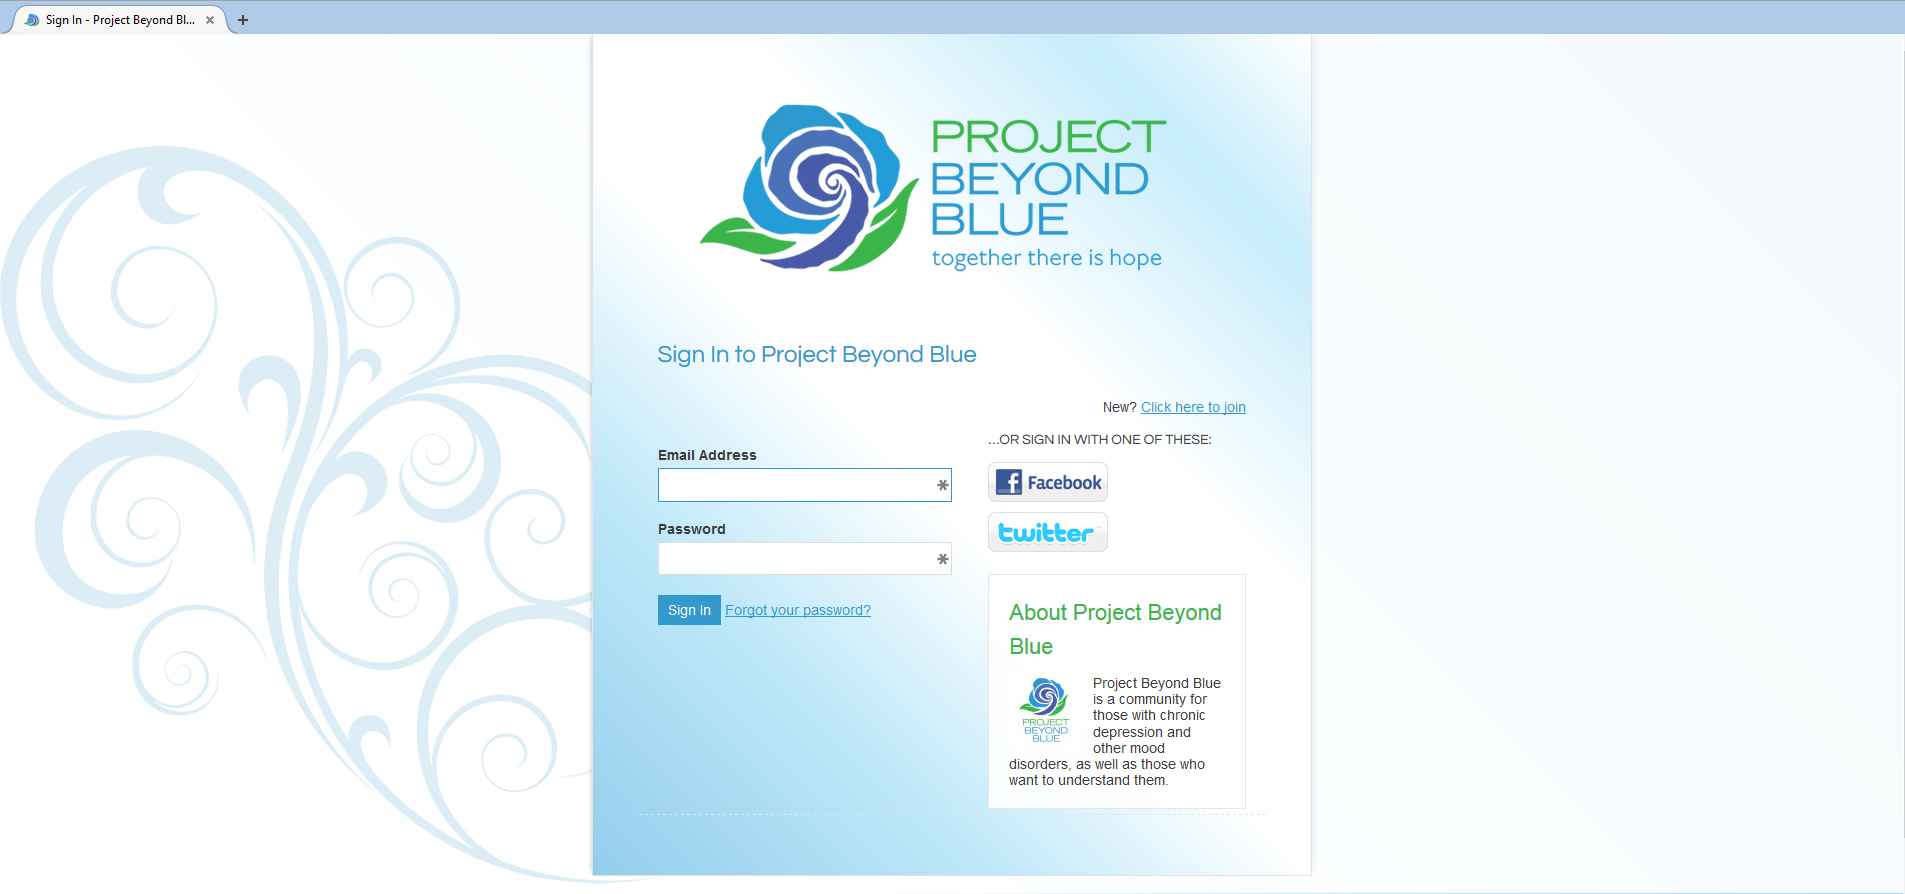 Project Beyond Blue Sign-In / Sign-Up Page